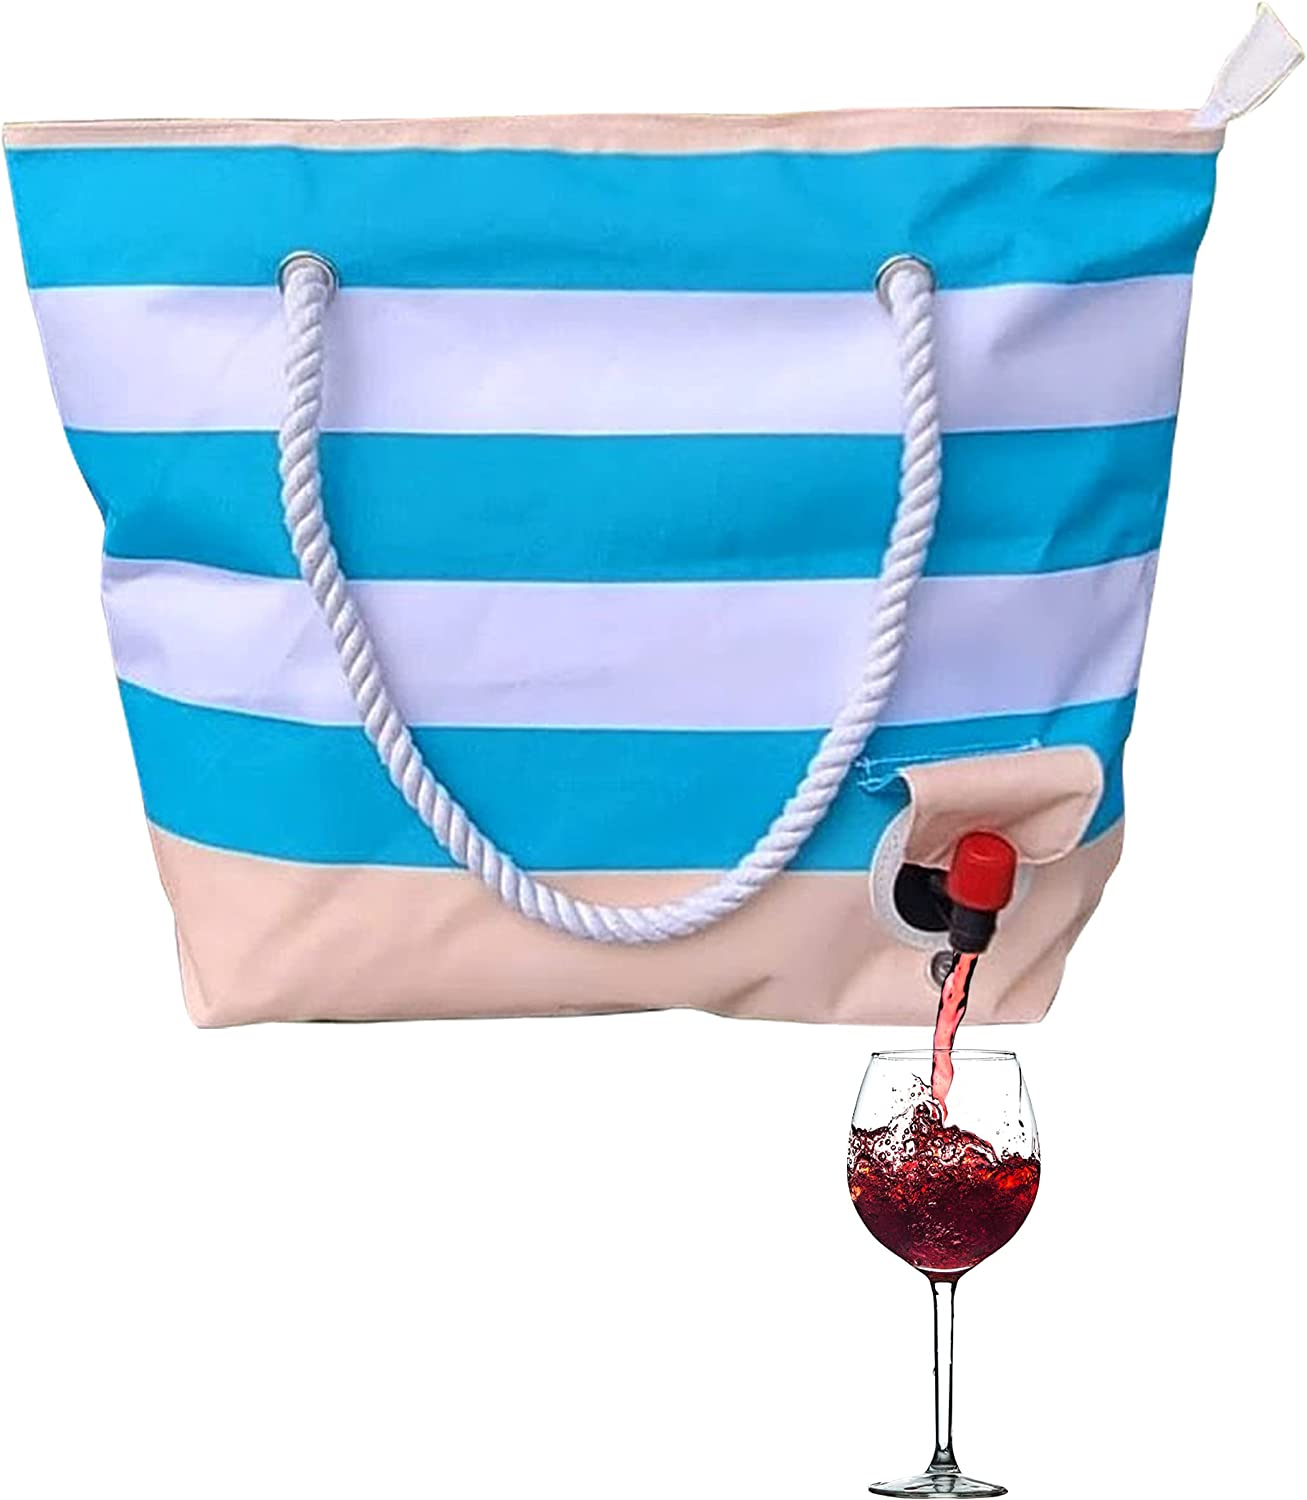 Insulated Wine Purse - Portable Tote w/Spout for Wine, Beer, Any Beverage - Gift for Wine Lovers